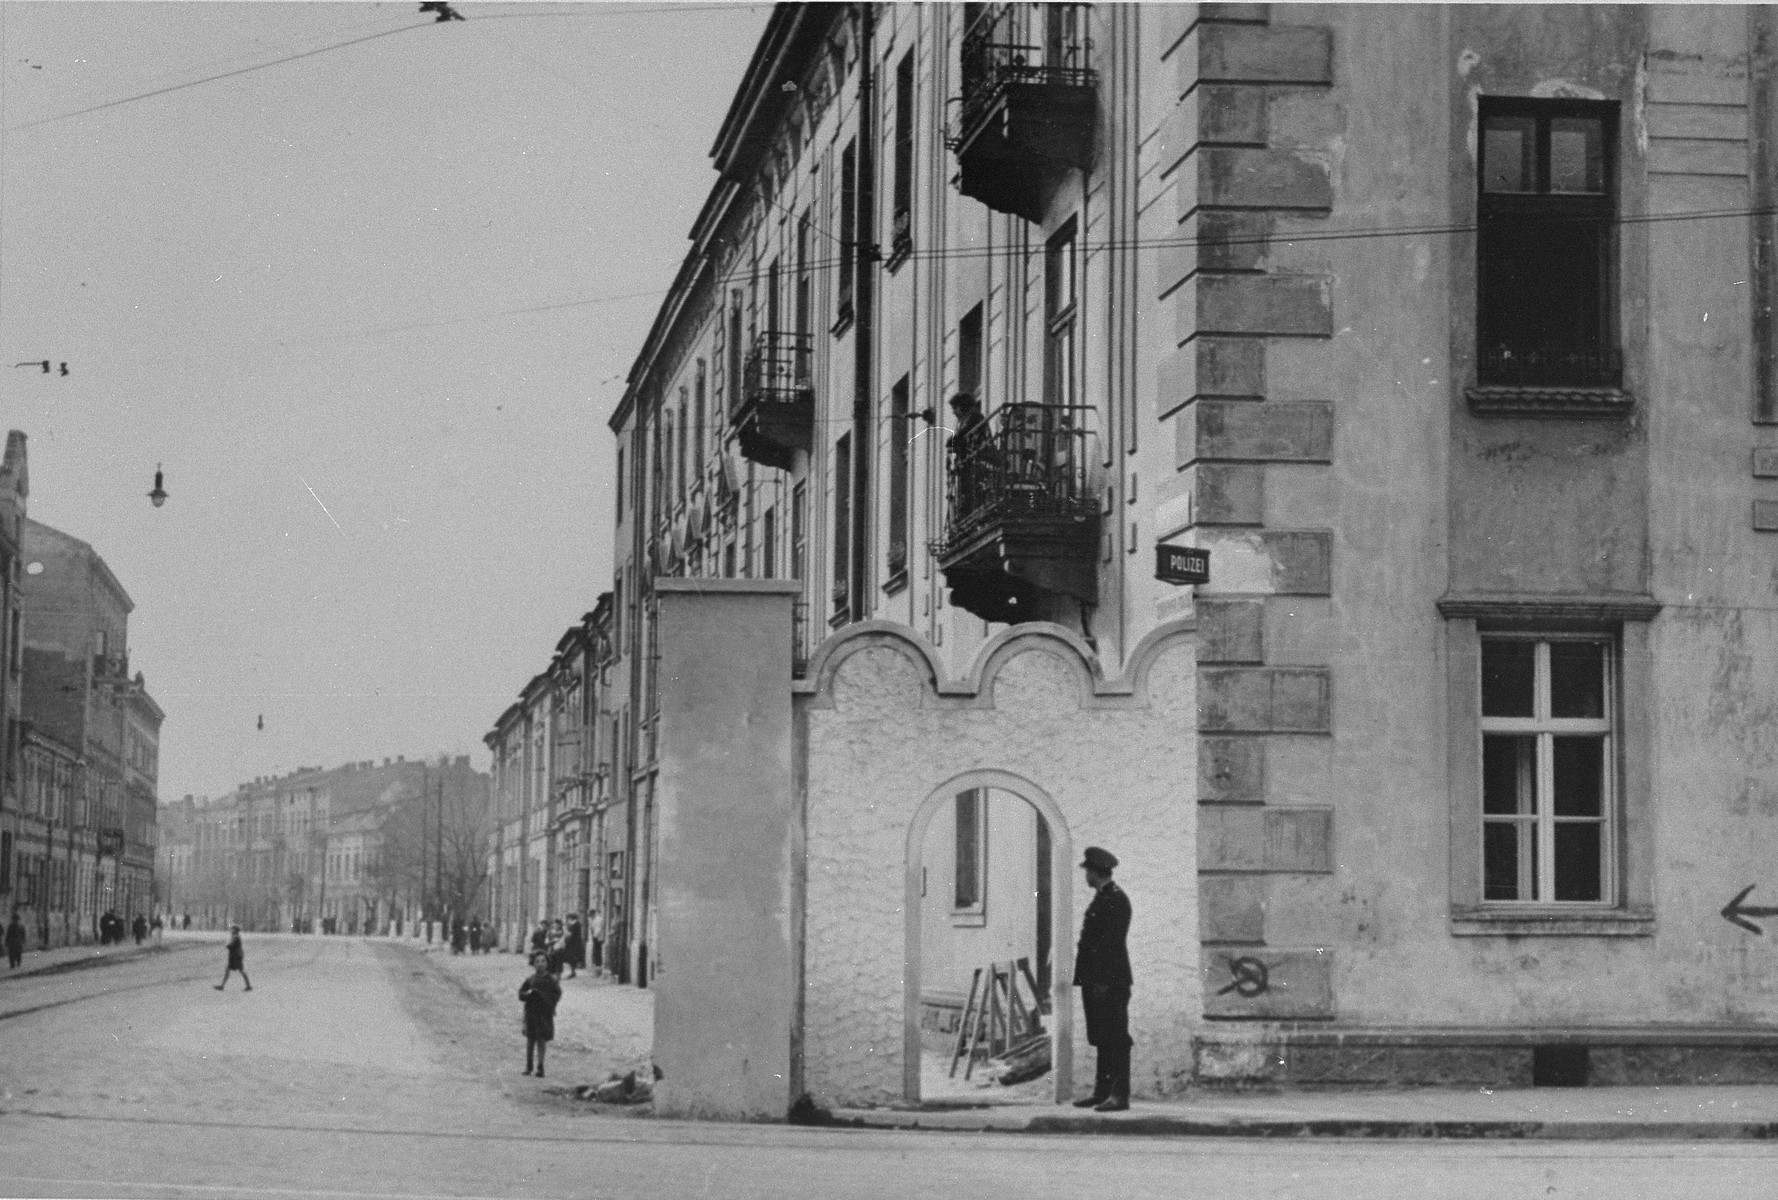 View of an entrance to the Krakow ghetto.